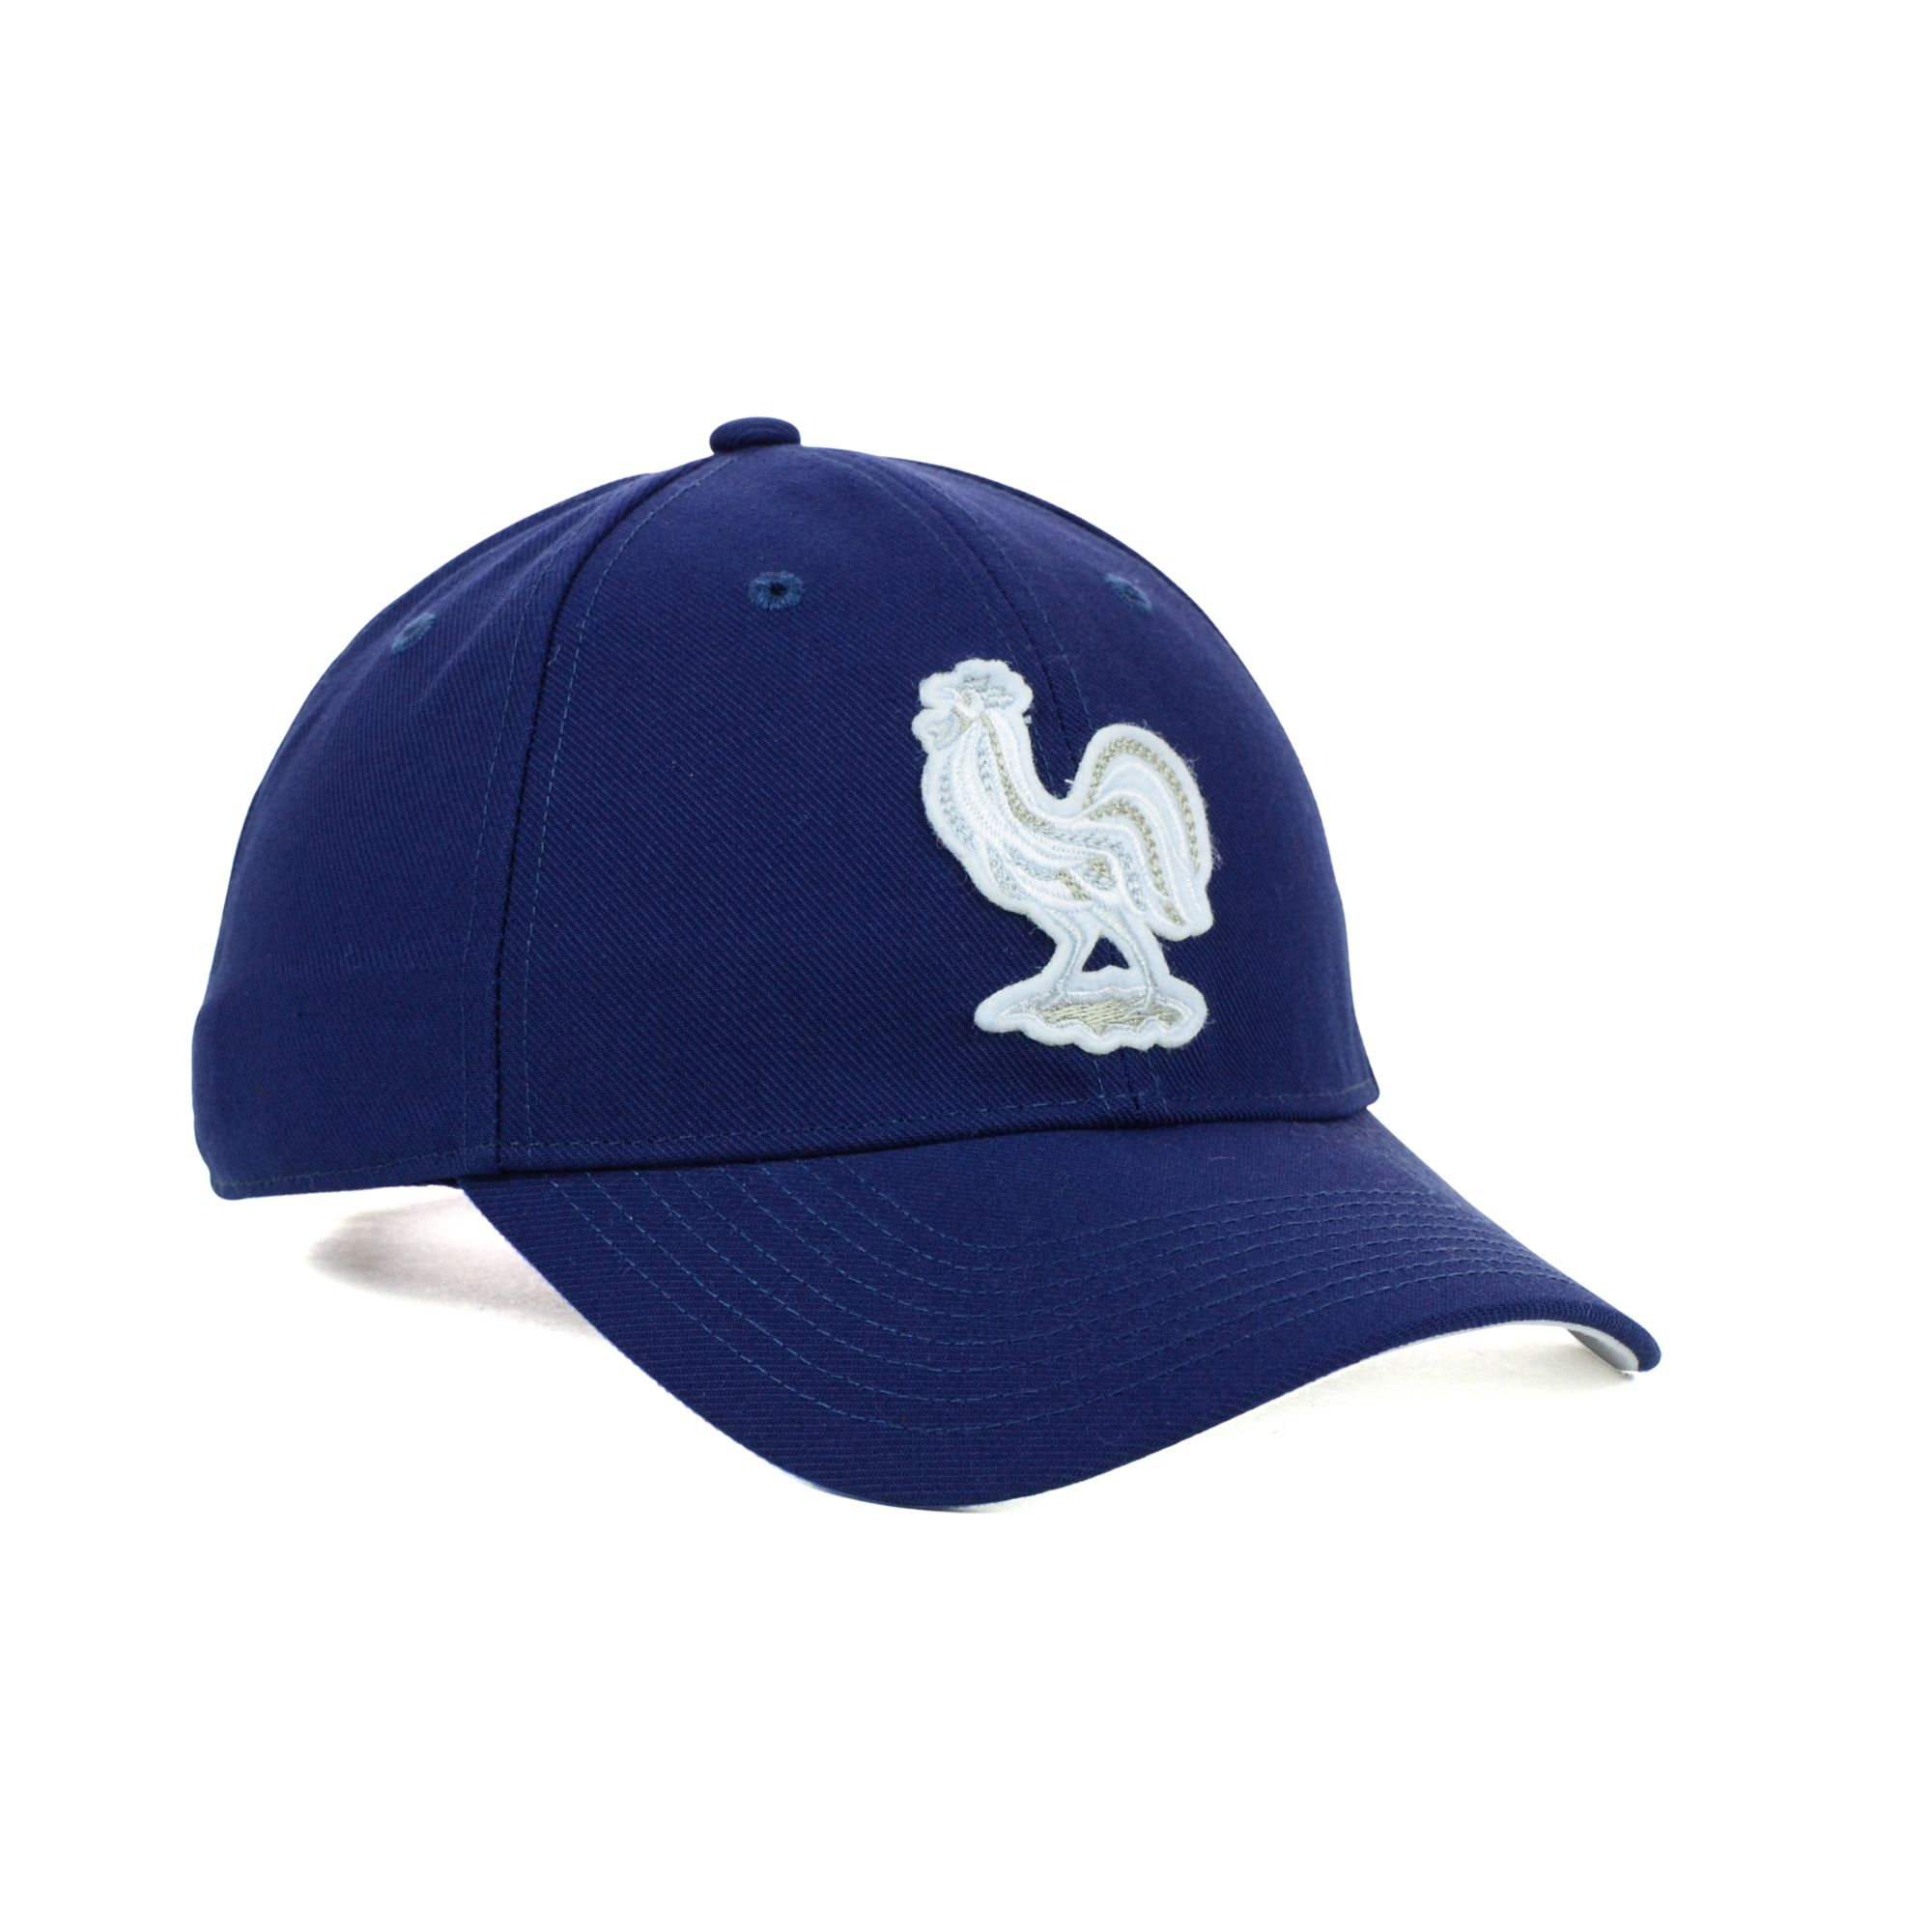 7929cb61dc4 Lyst - Nike France World Cup National Team Core Cap in Blue for Men